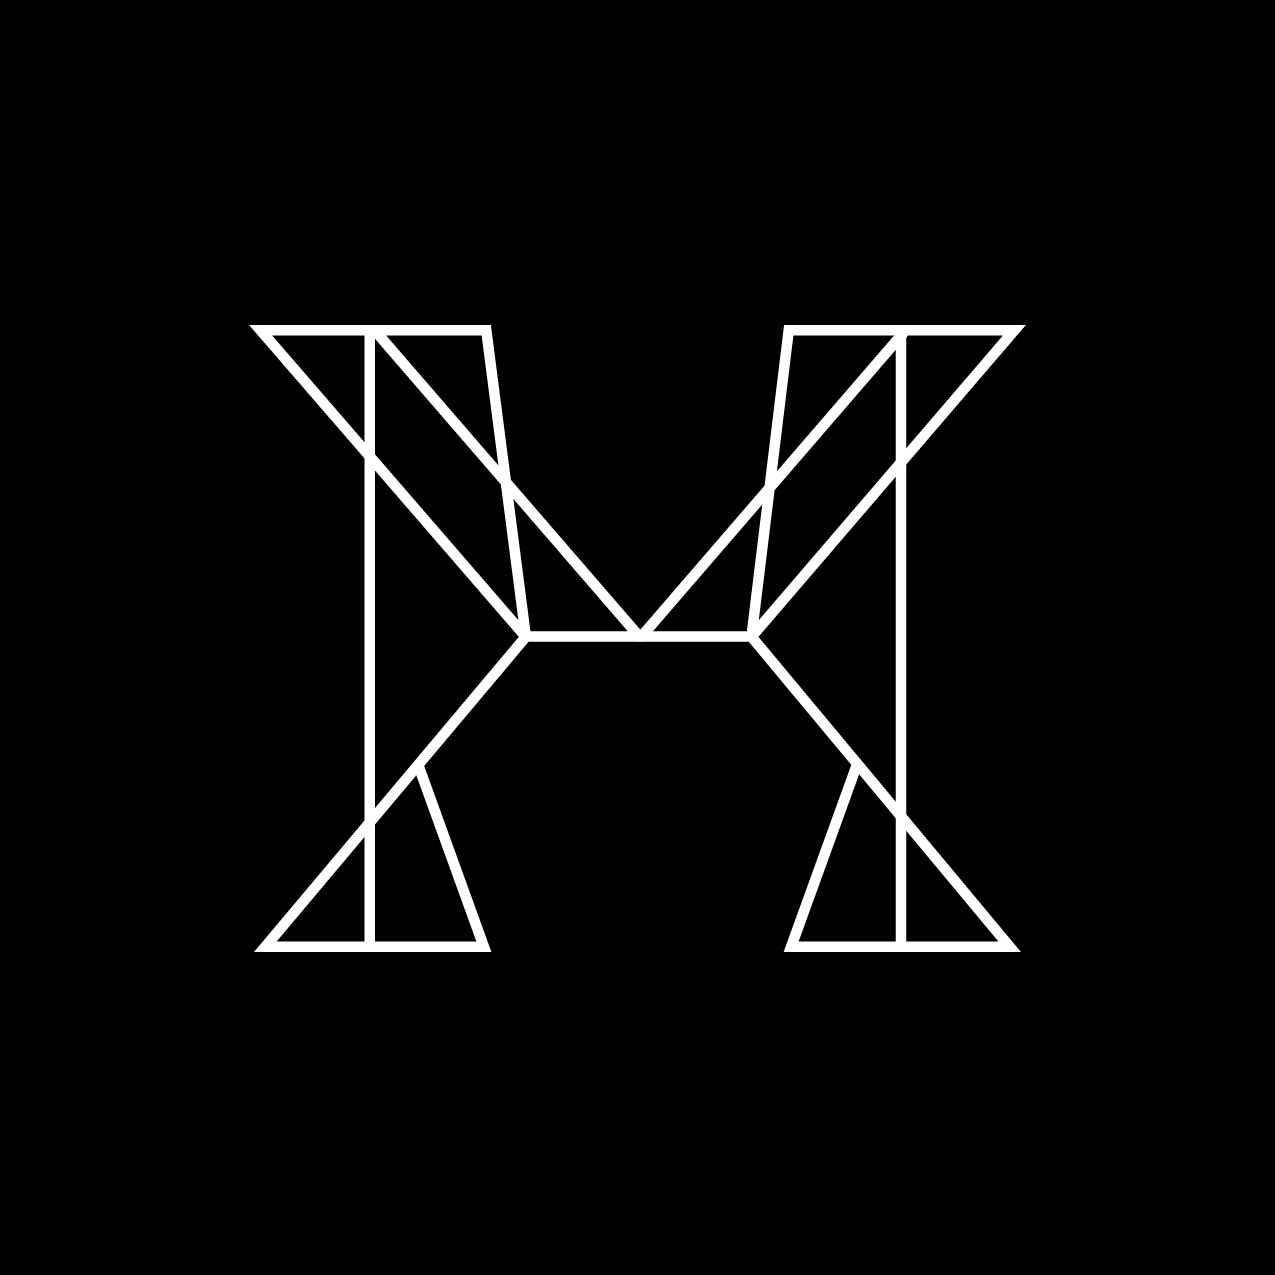 Letter M1 Design by Furia